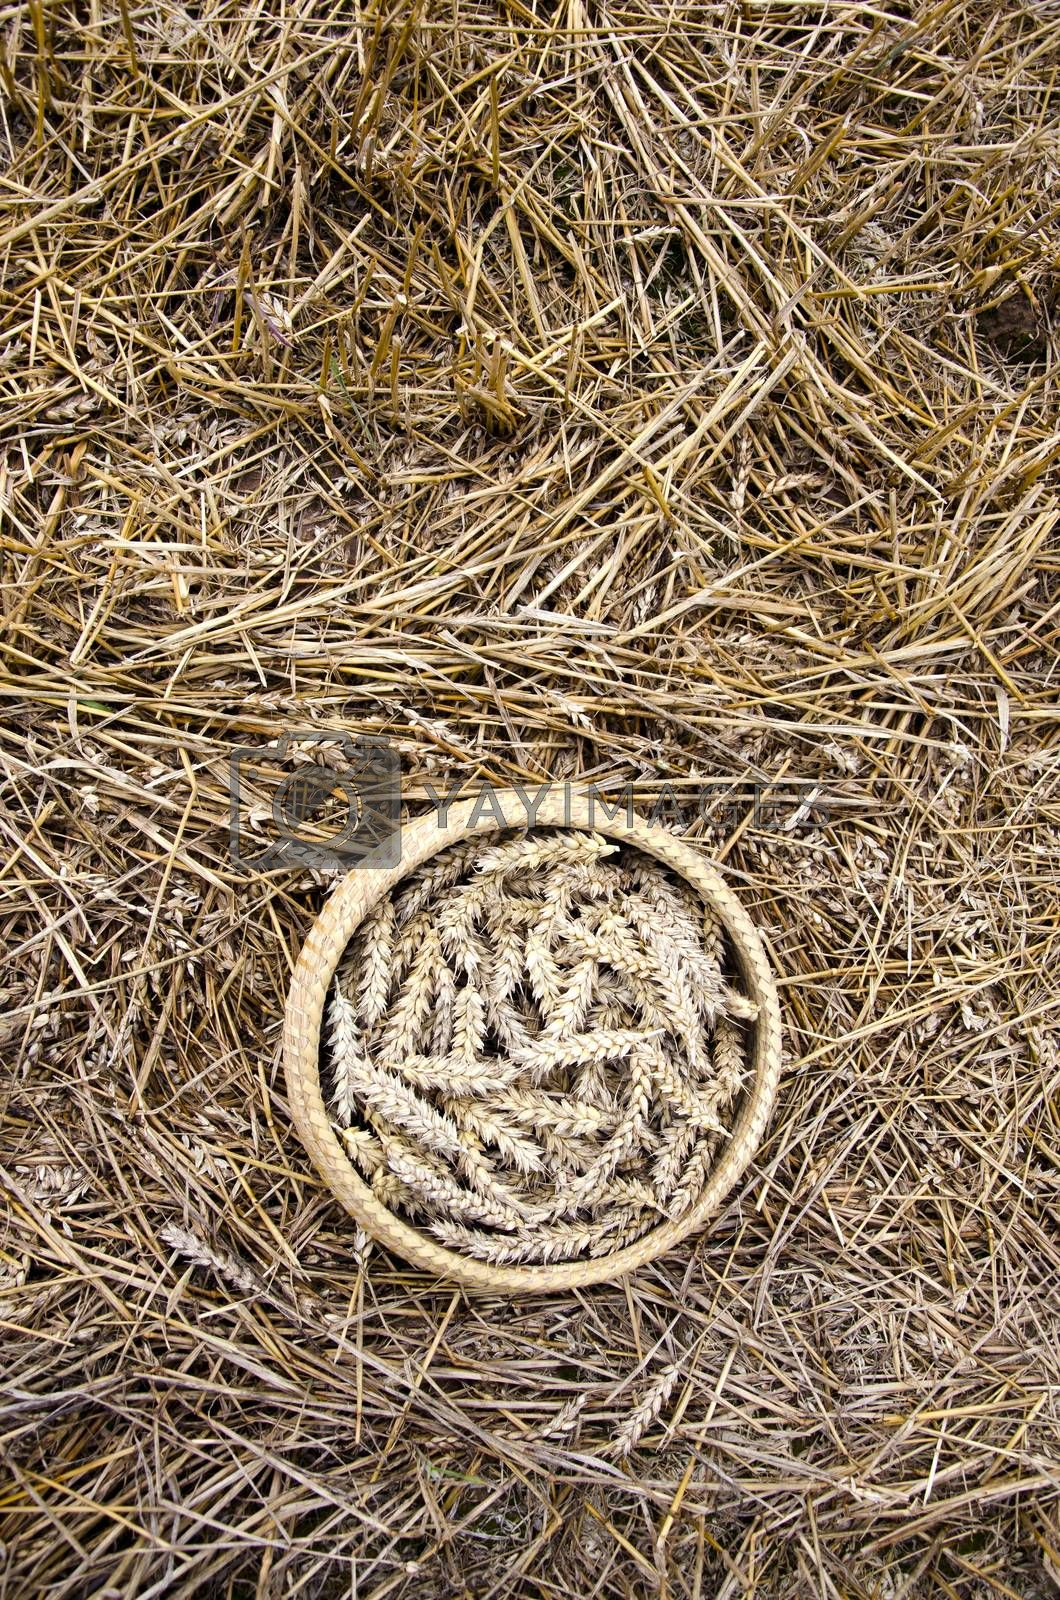 Royalty free image of ripe wheat ears after harvesting in basket on field with straw by alis_photo